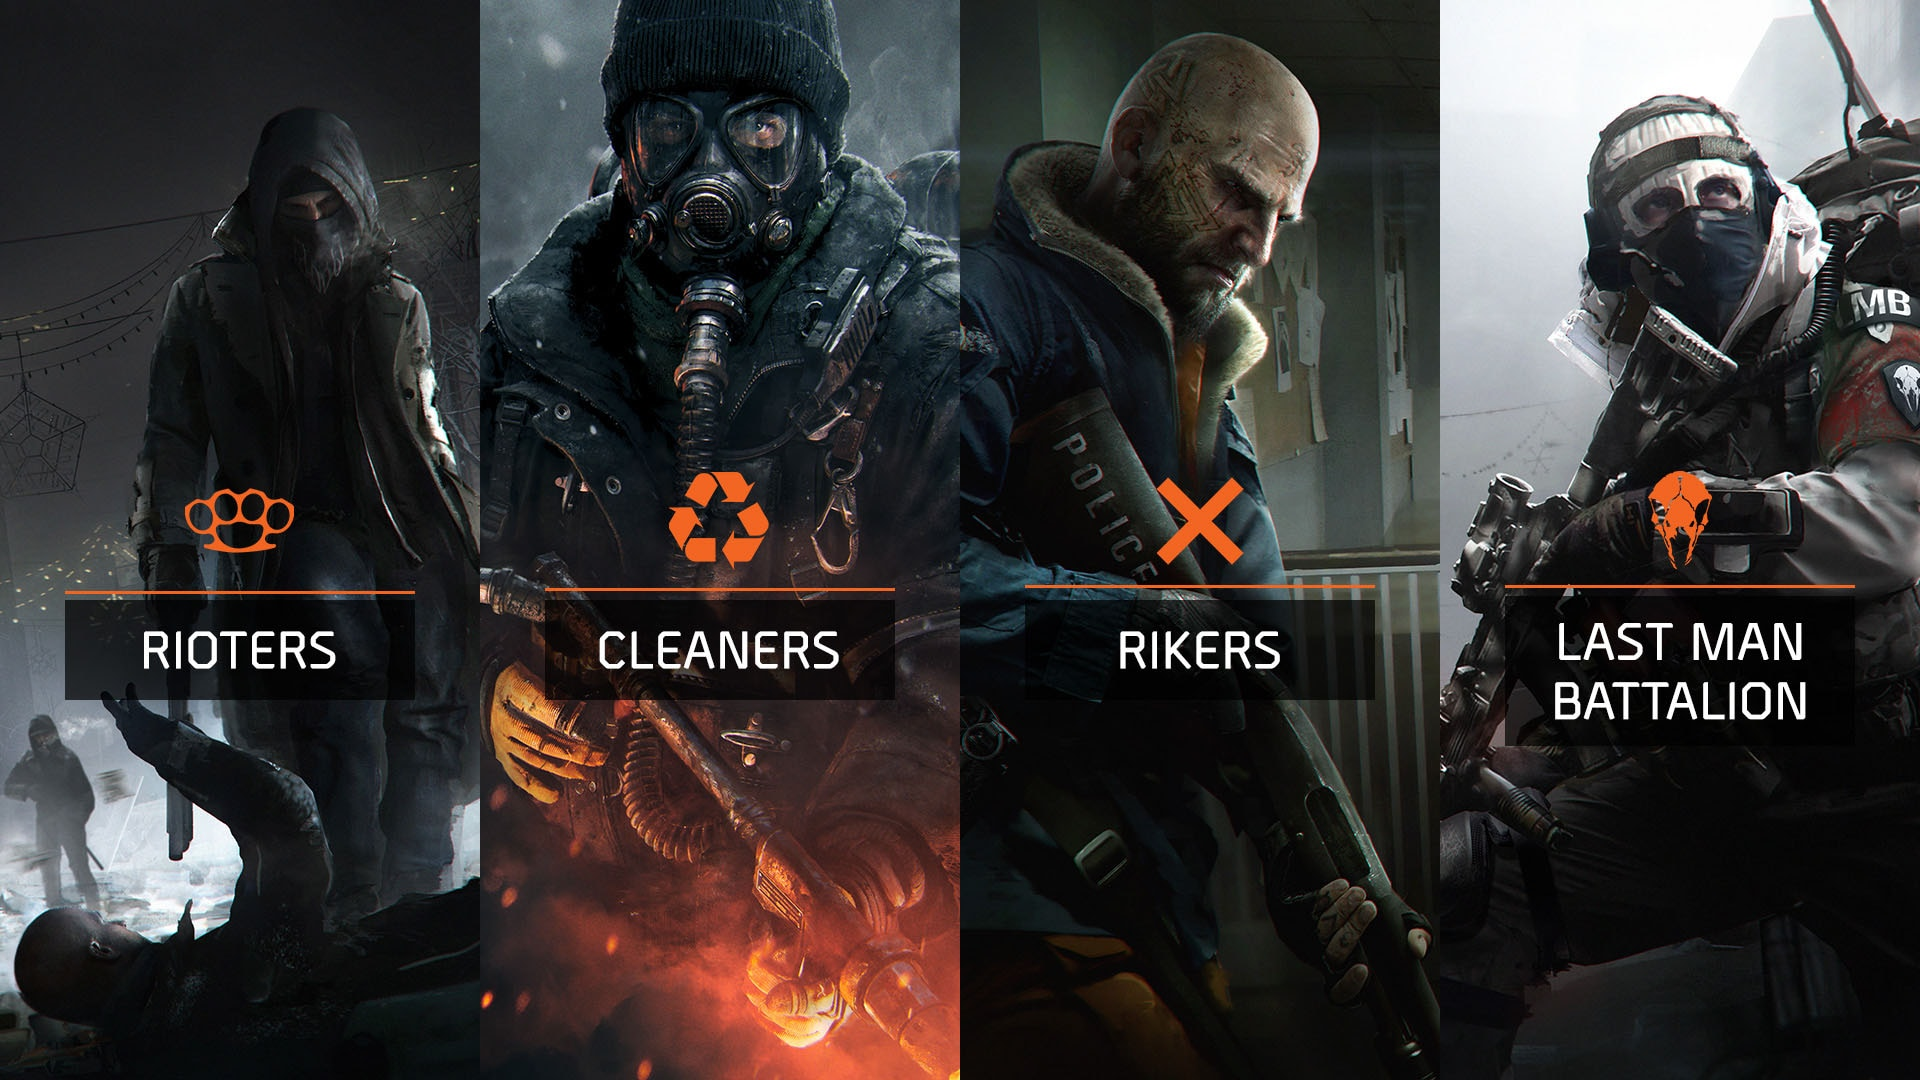 Printables Division latest news and content about tom clancys the division game discover divisions enemy factions